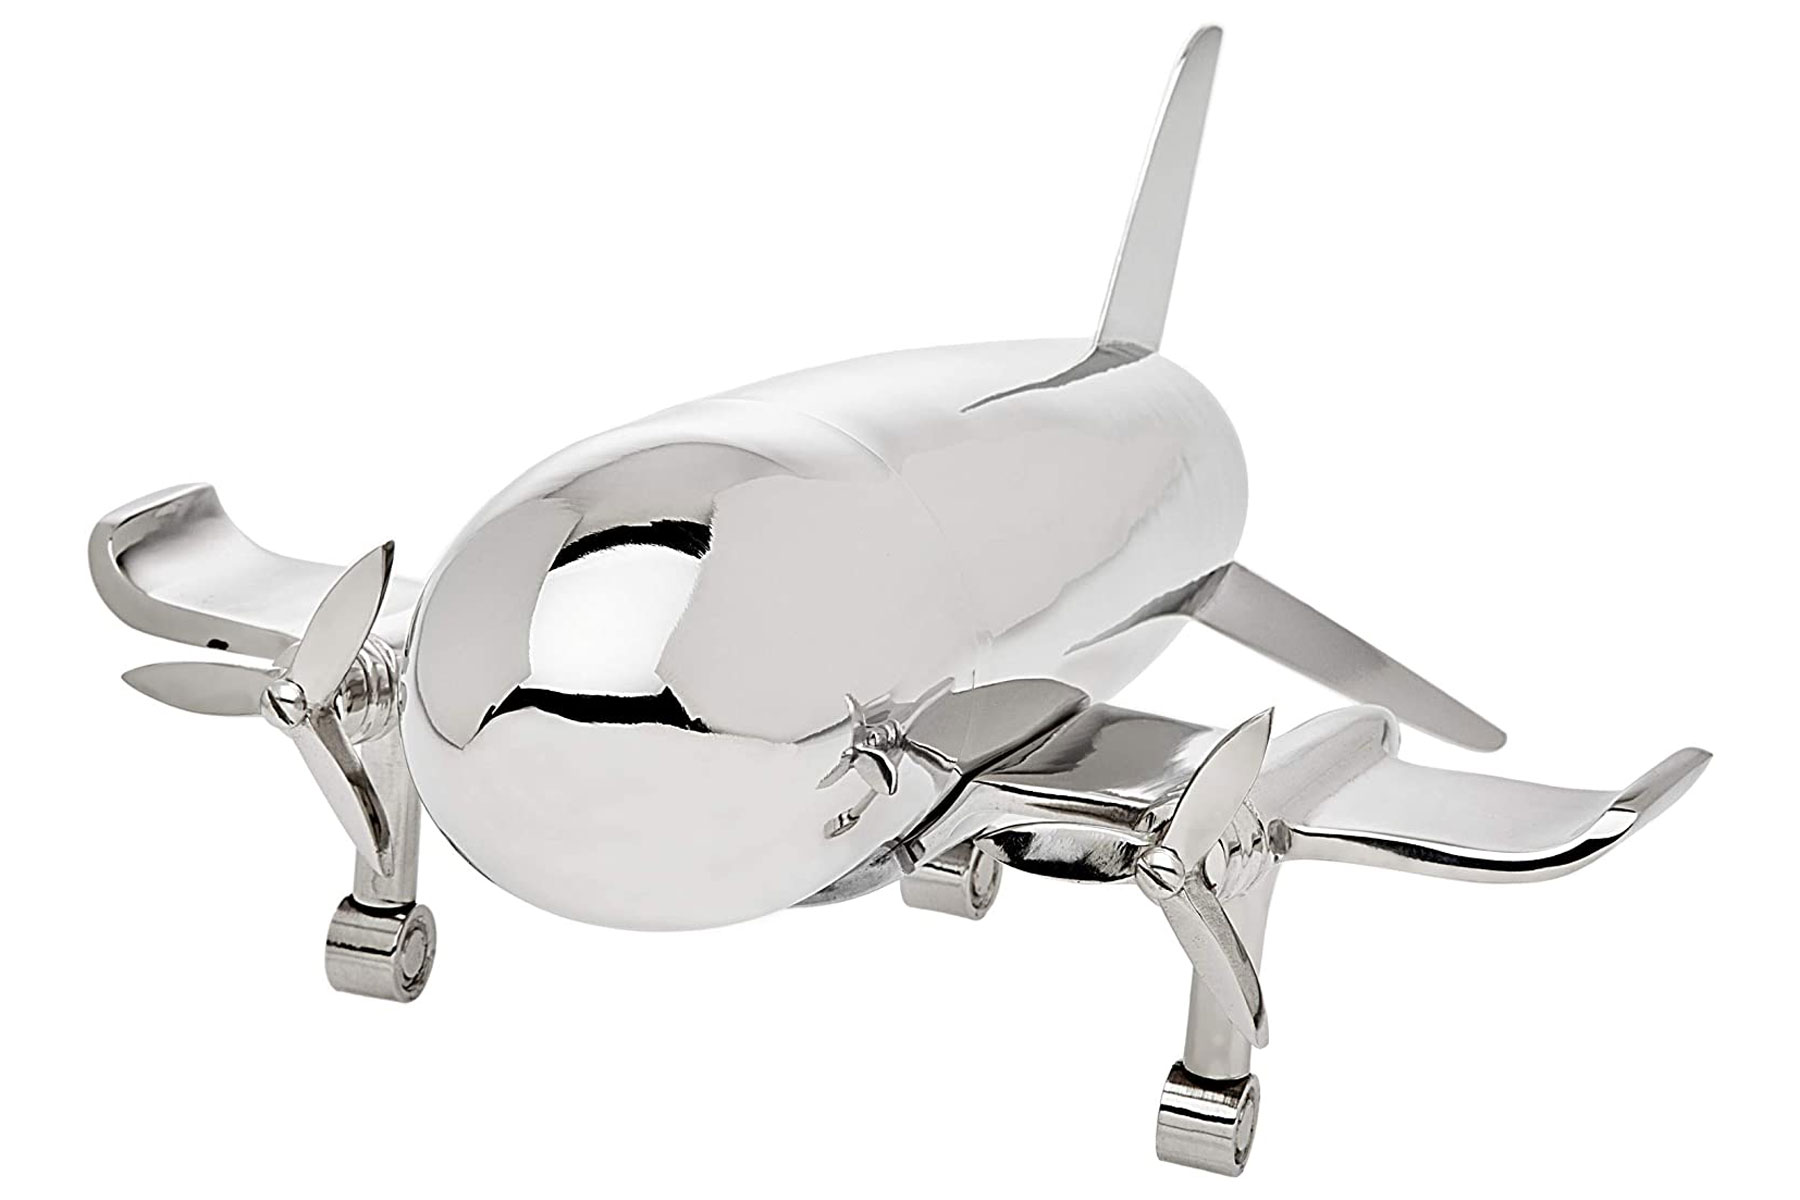 Stainless steel airplane shaped cocktail shaker